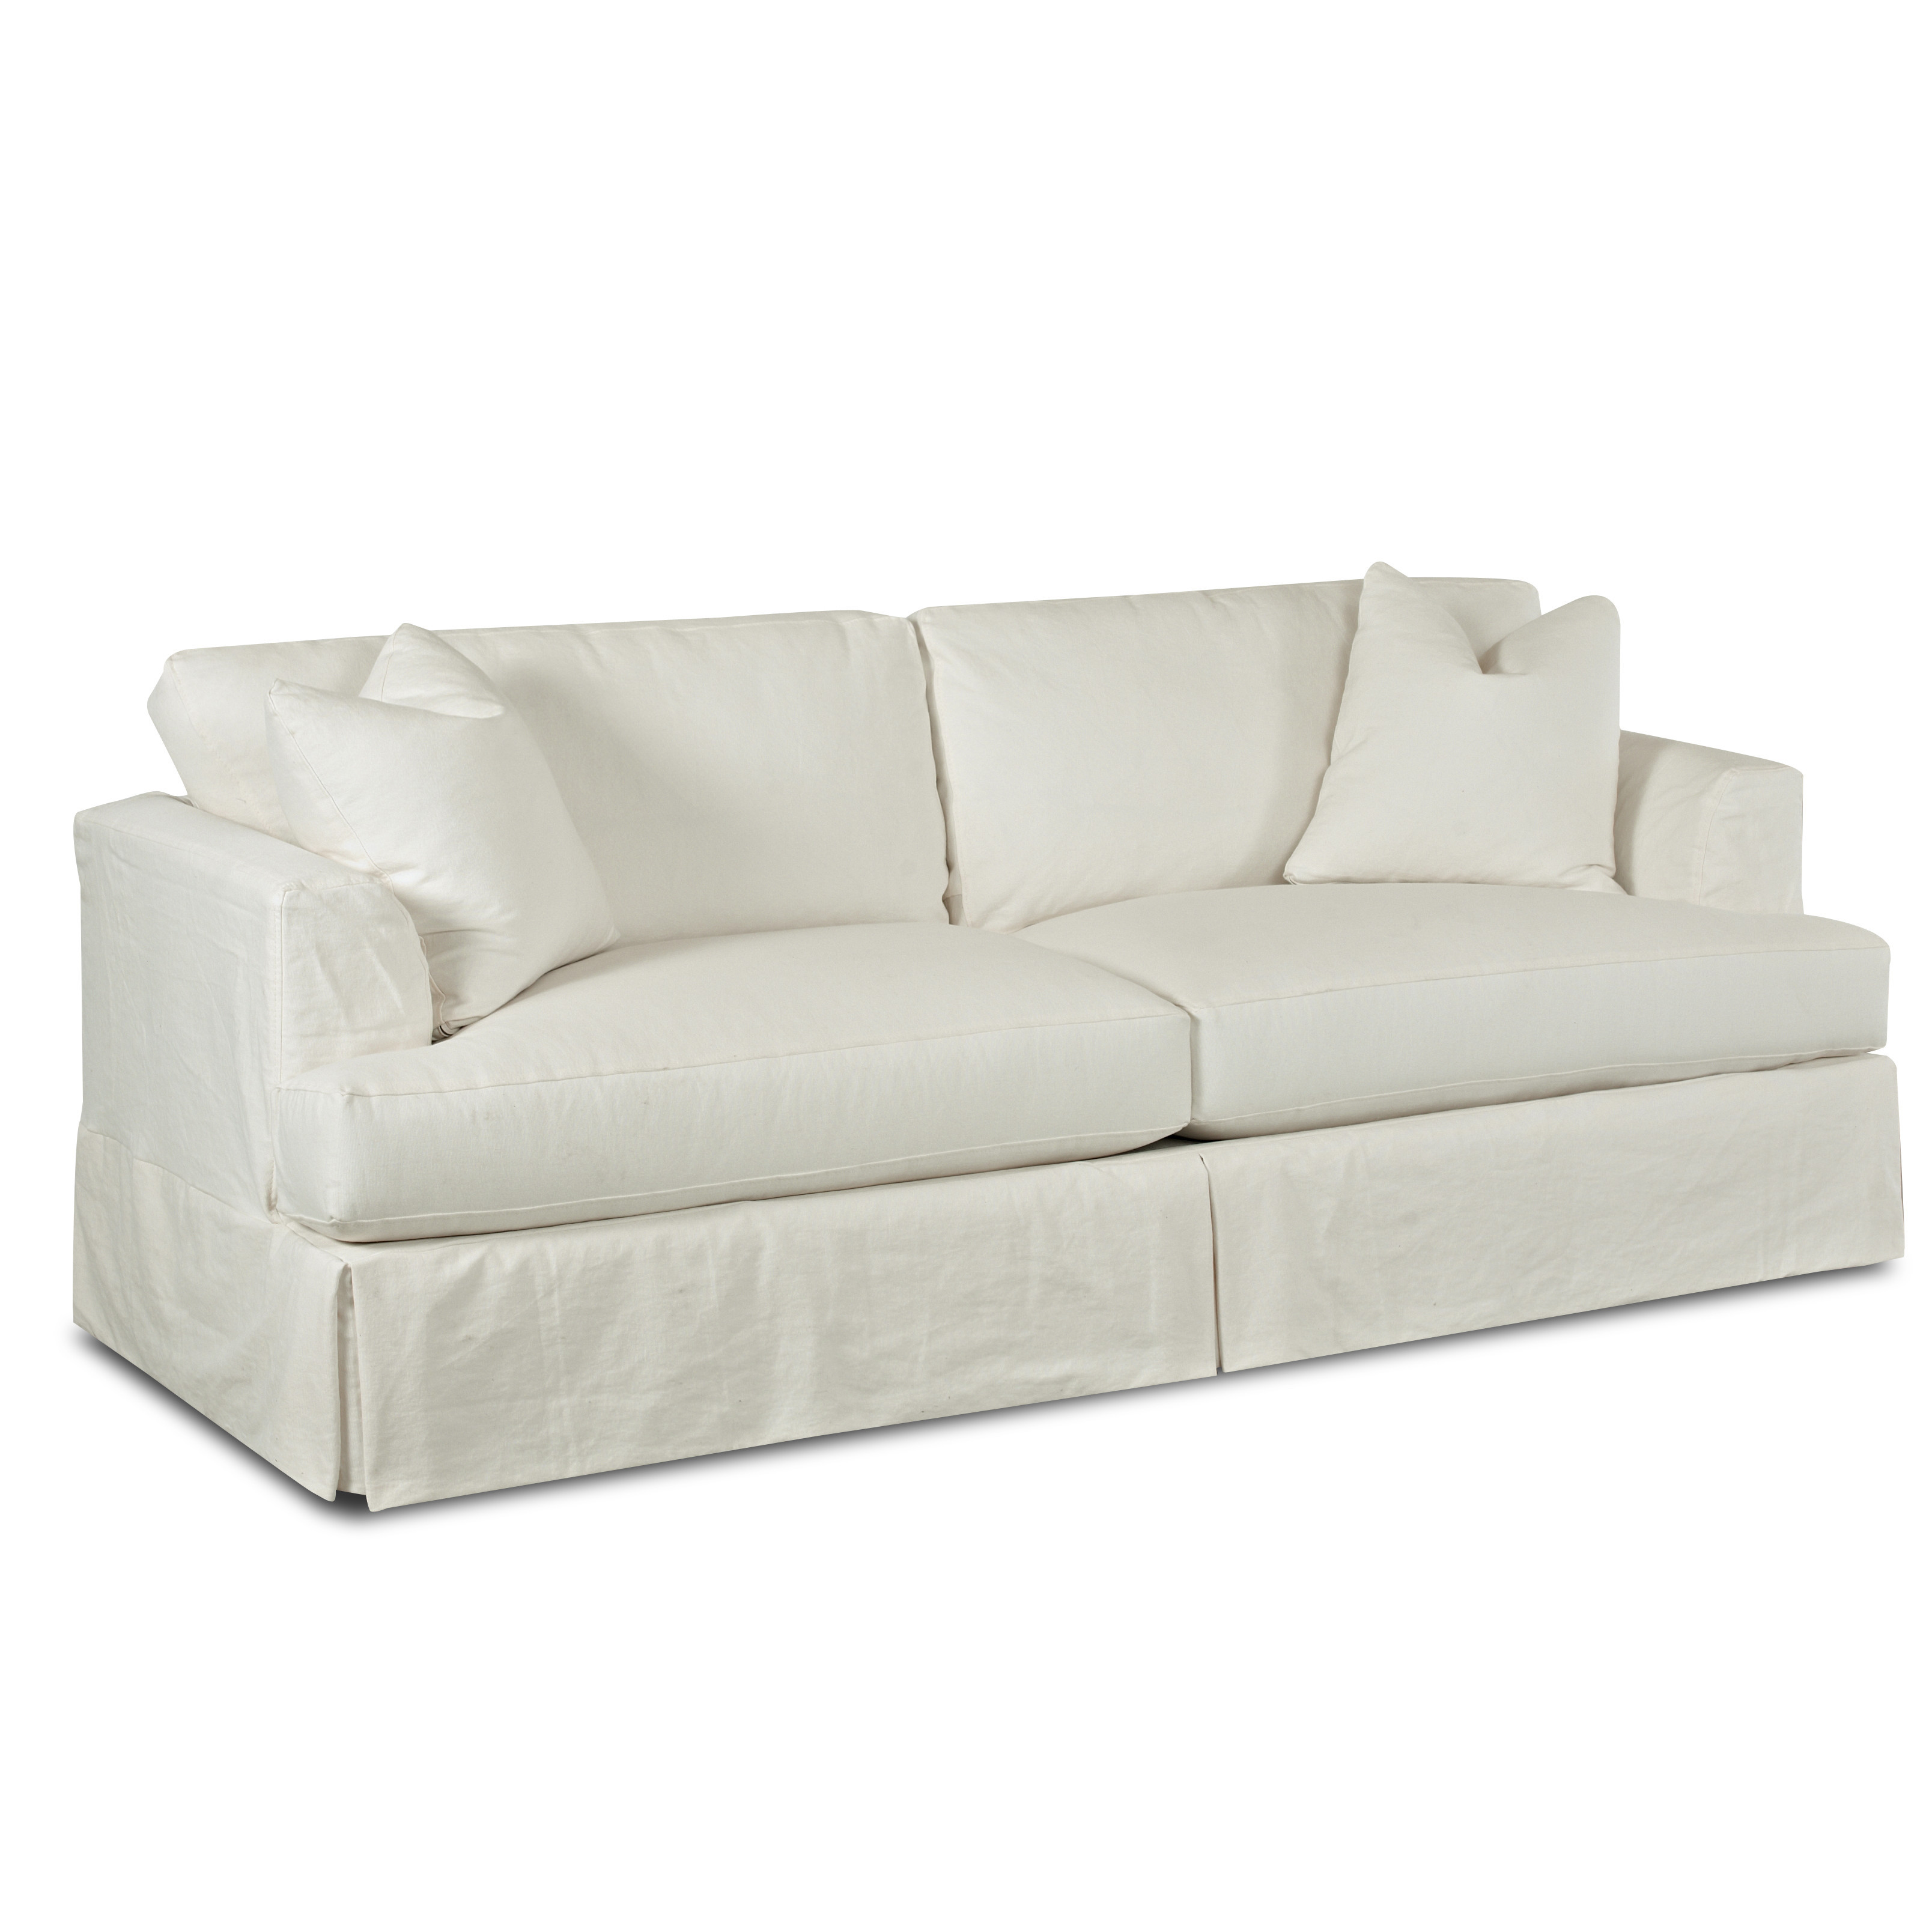 Best ideas about Wayfair Sectional Sofa . Save or Pin Wayfair Custom Upholstery Carly Sofa & Reviews Now.